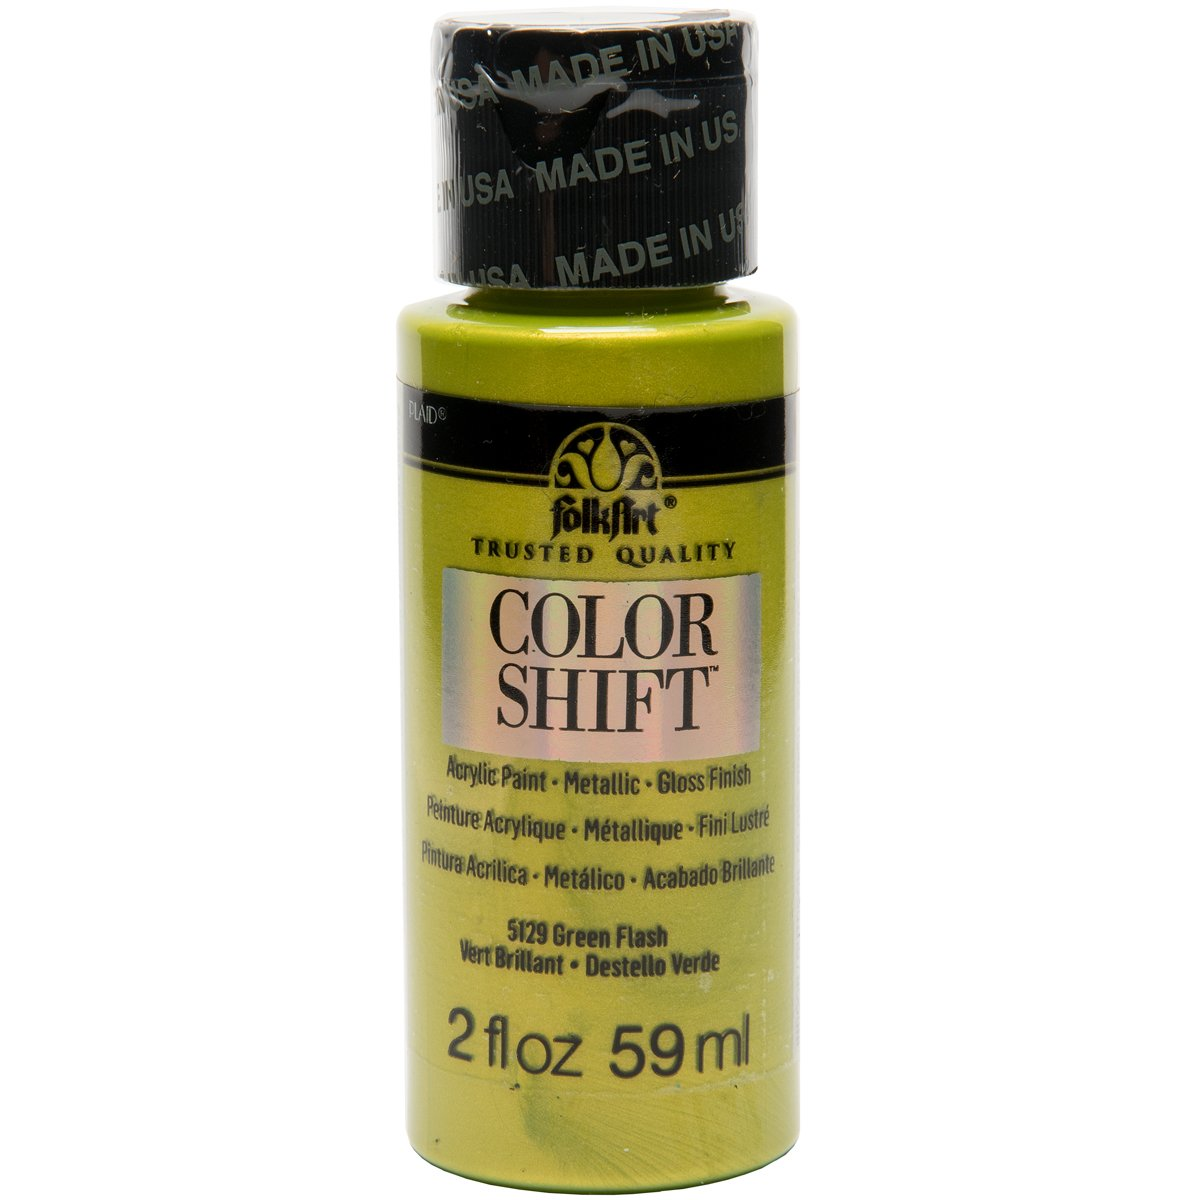 FolkArt Color Shift Acrylic Paint in Assorted Colors (2 ounce), Green Flash